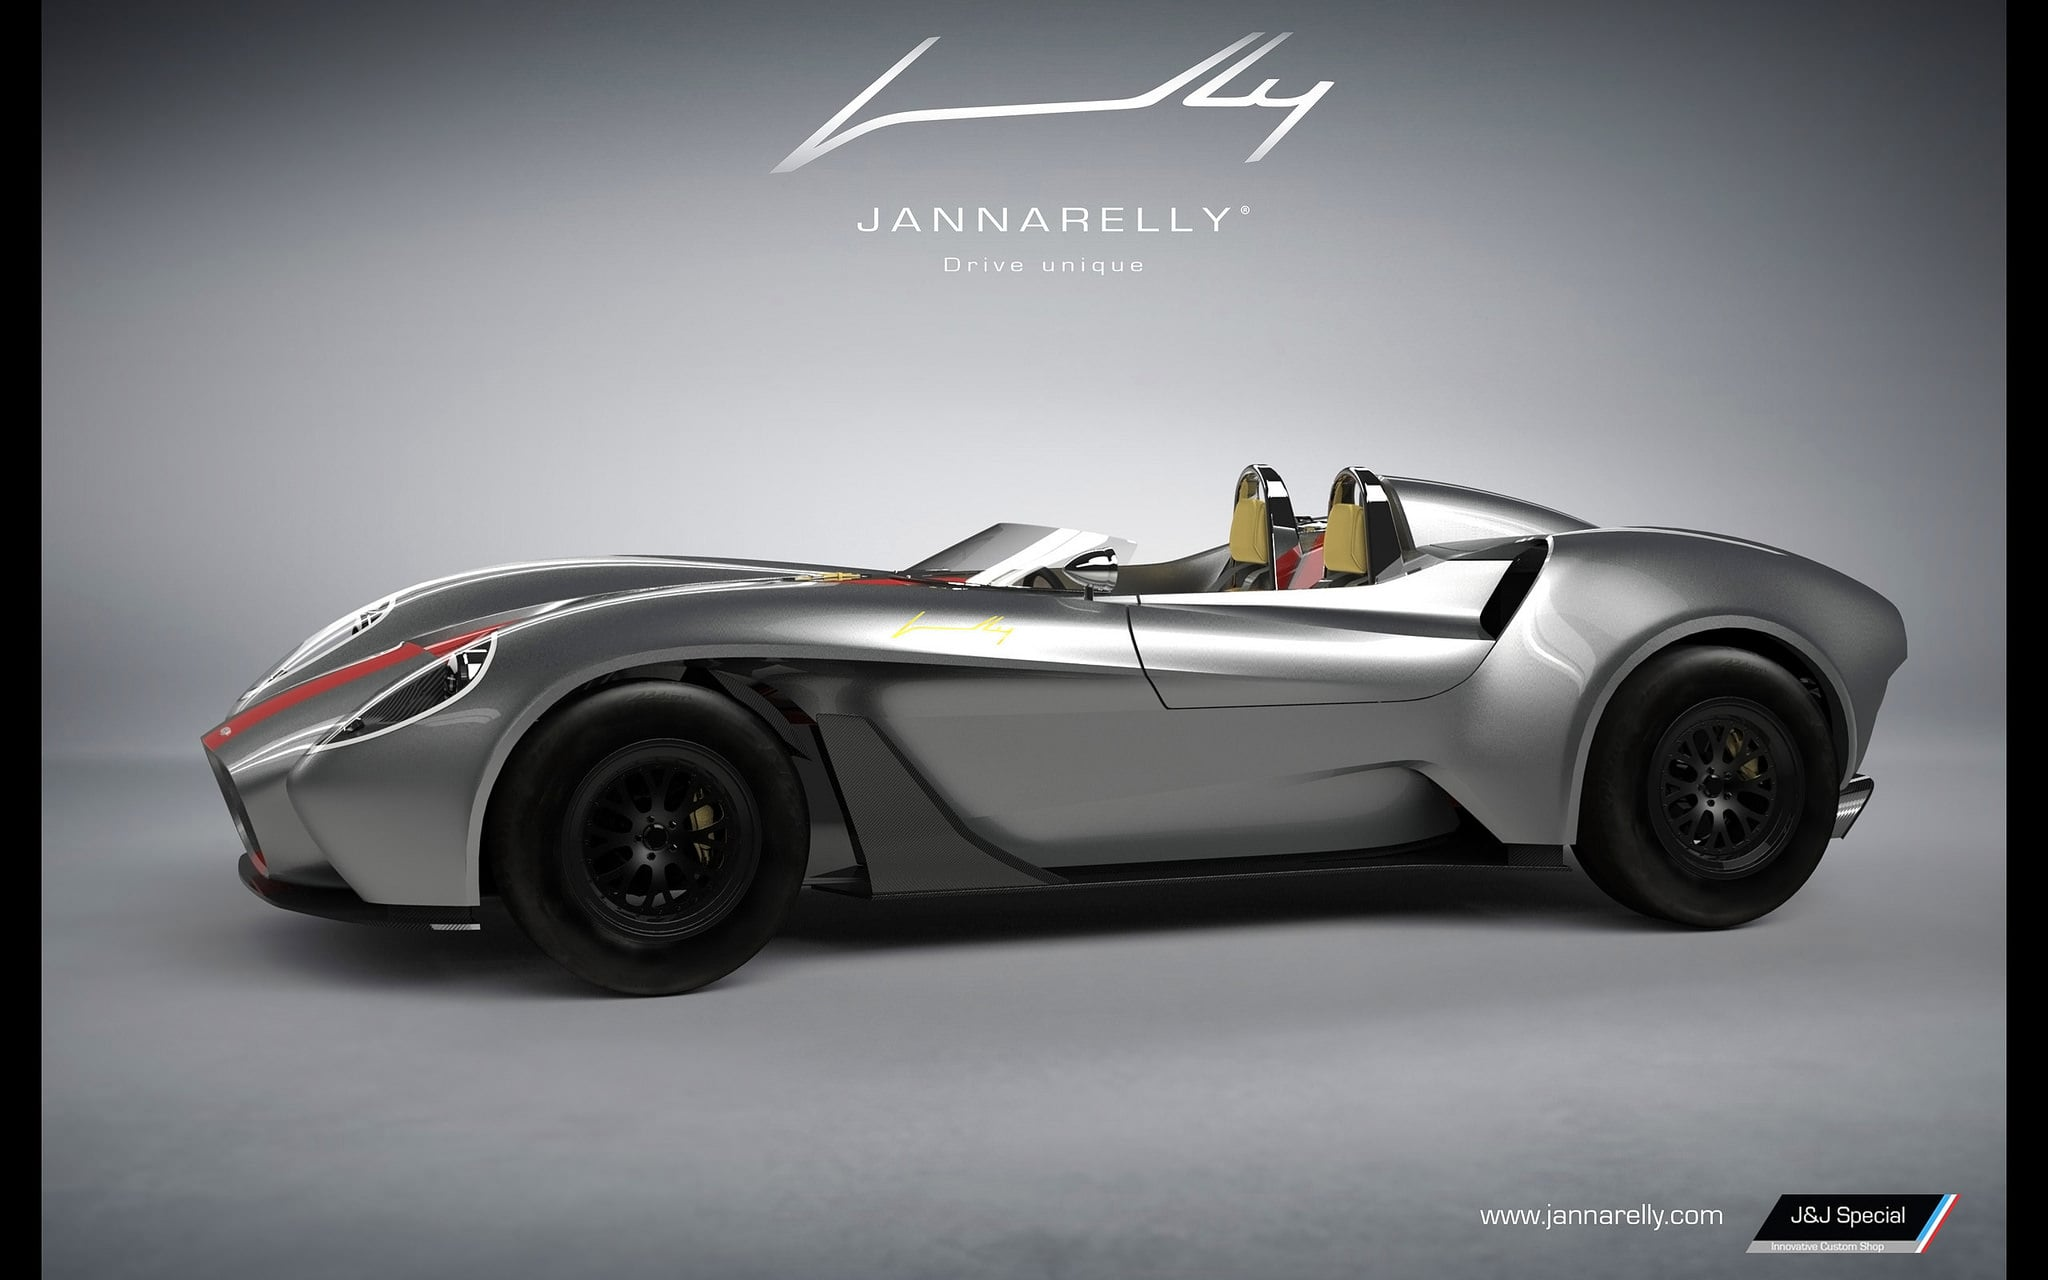 2016 Jannarelly wallpapers